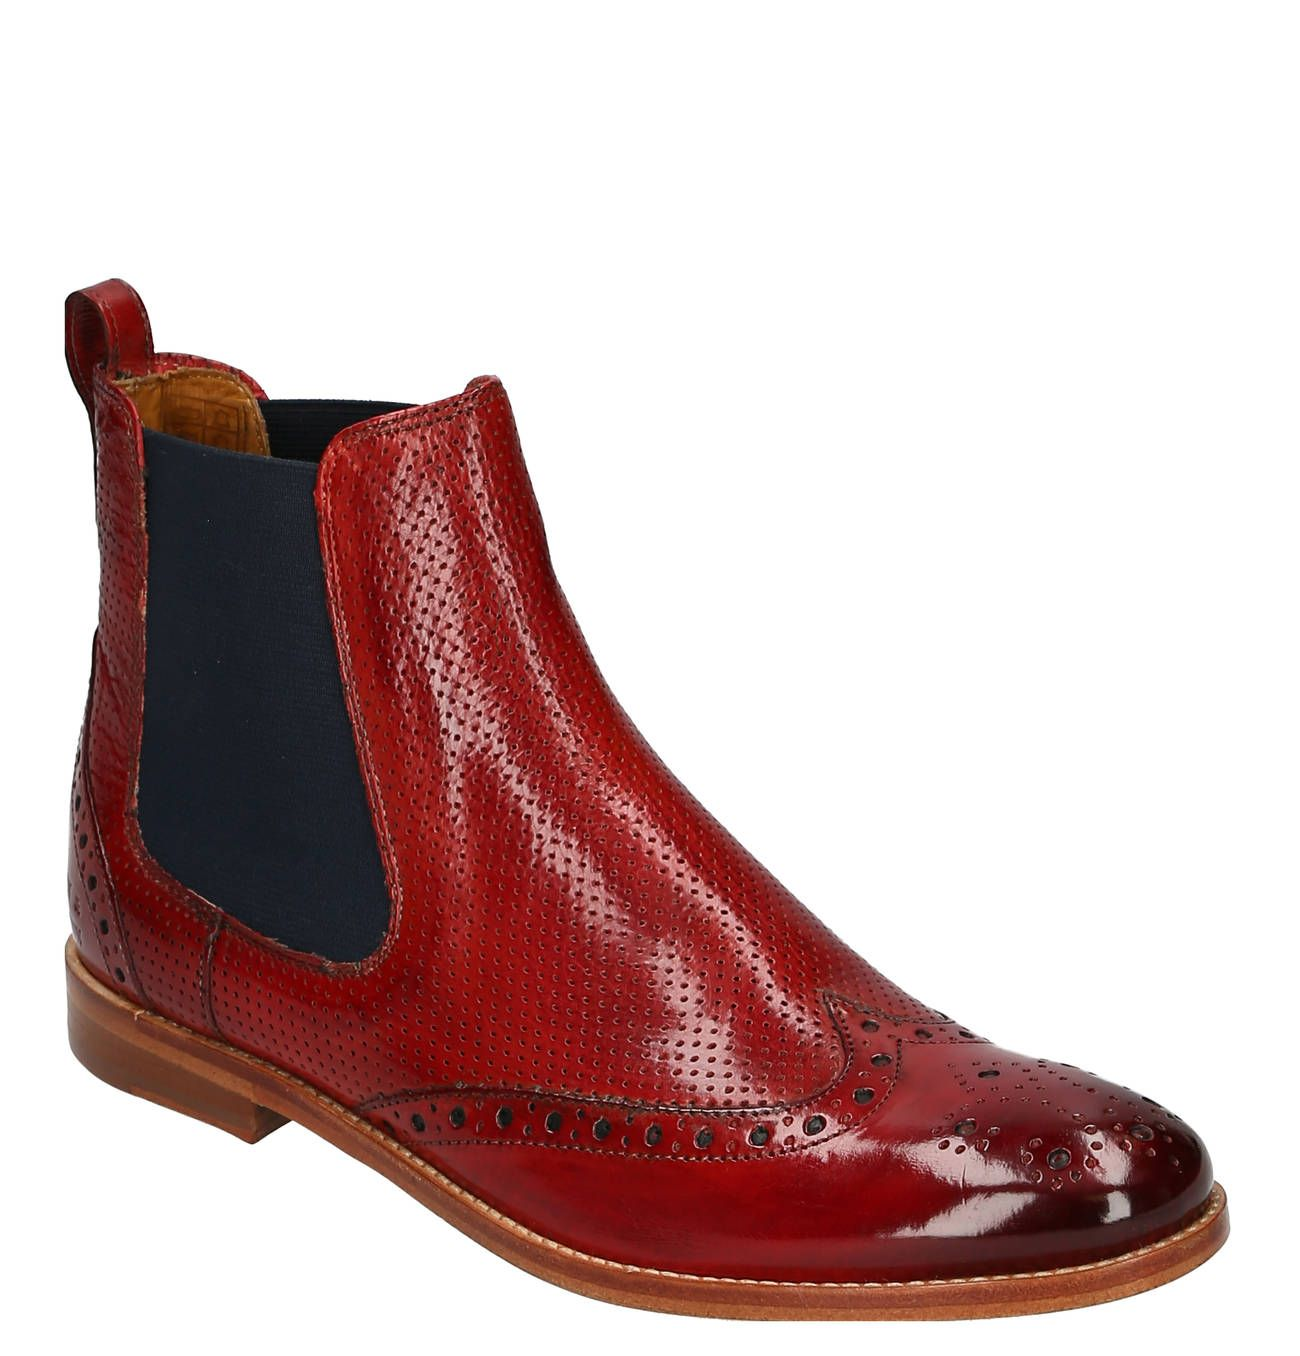 newest a00ae 3516f MELVIN & HAMILTON Chelsea Boots